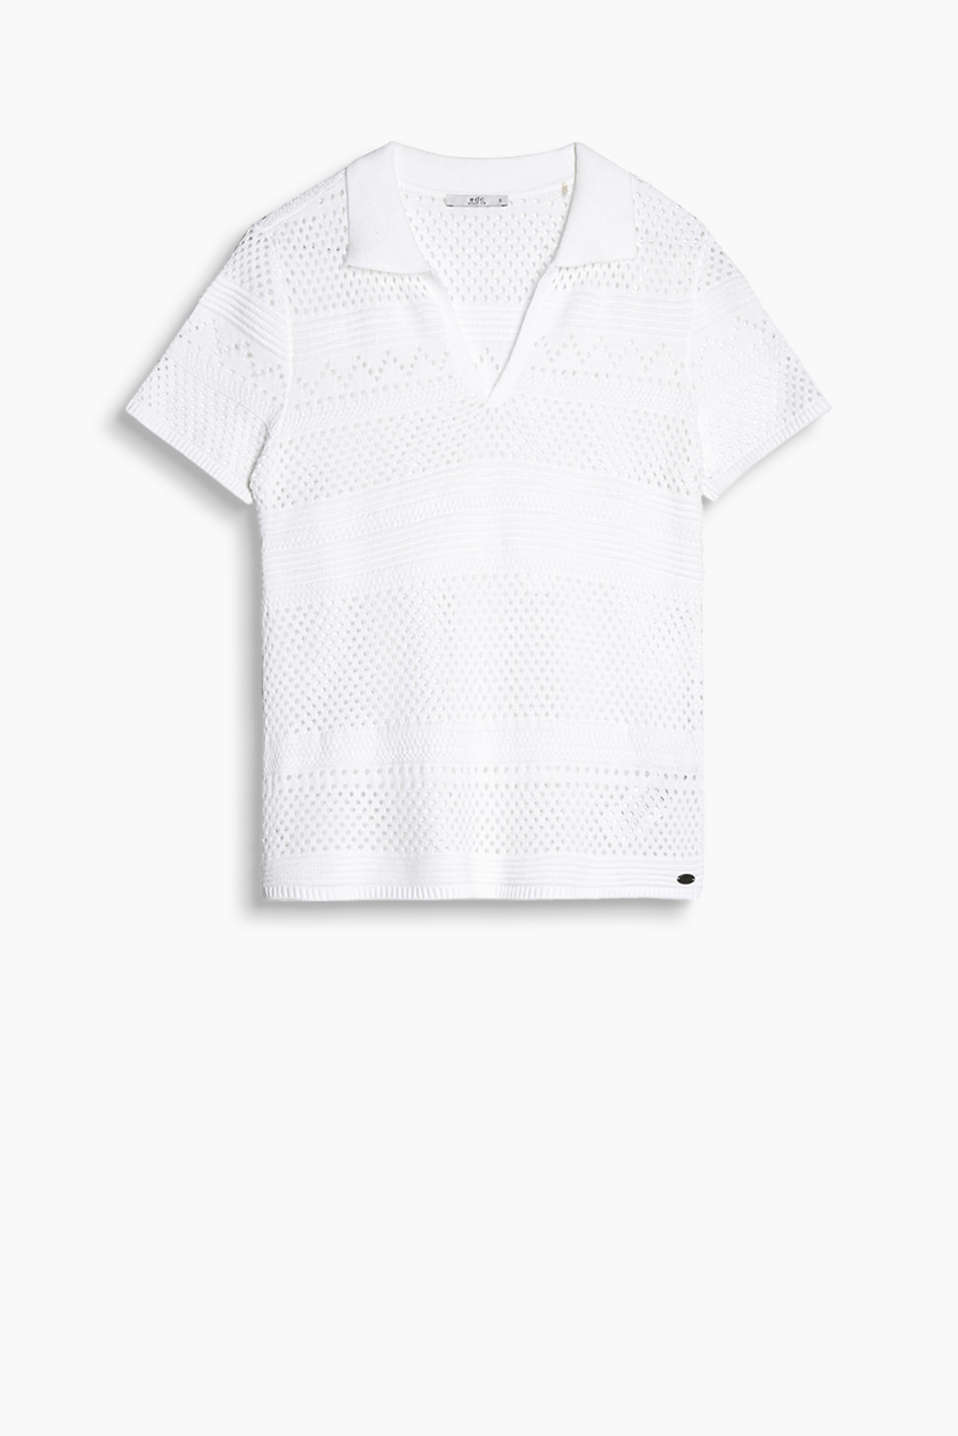 Polo shirt in a see-through look made of 100% cotton